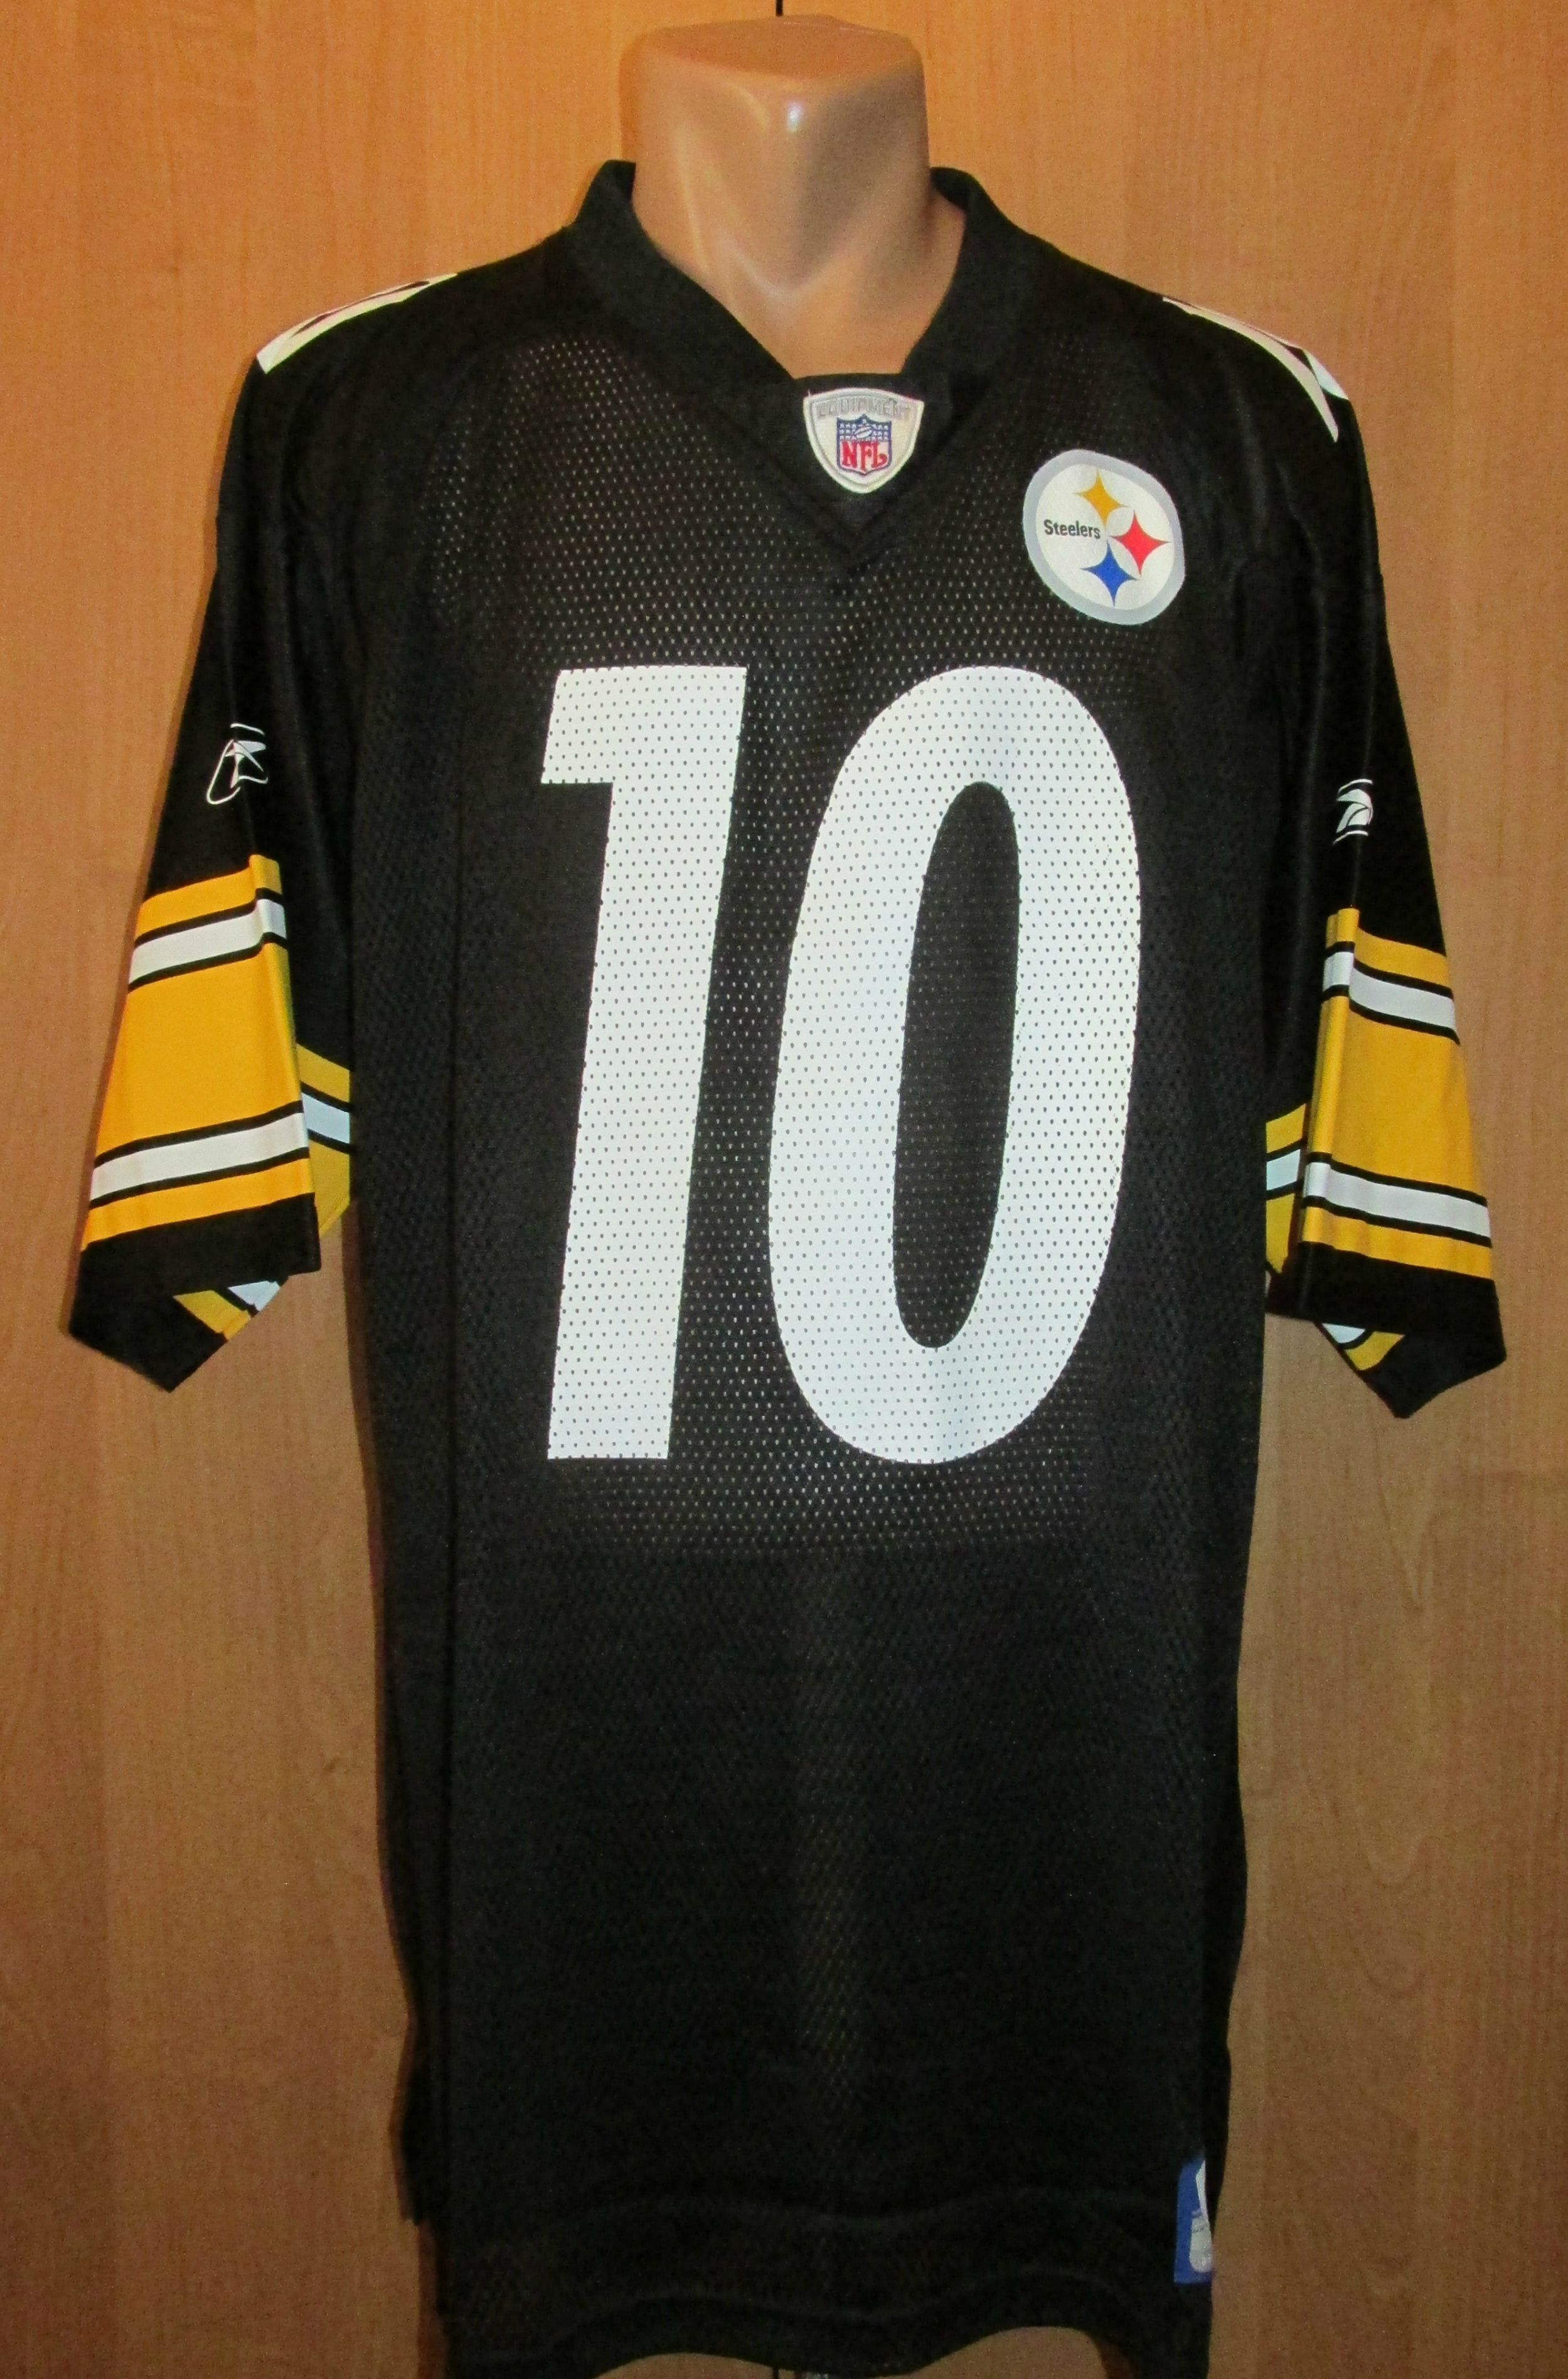 NFL Pittsburgh Steelers Kordell Stewart  10 football jersey by Reebok  NFL   football  USA  pittsburgh  steelers  reebok  jersey  stewart 759c76df7